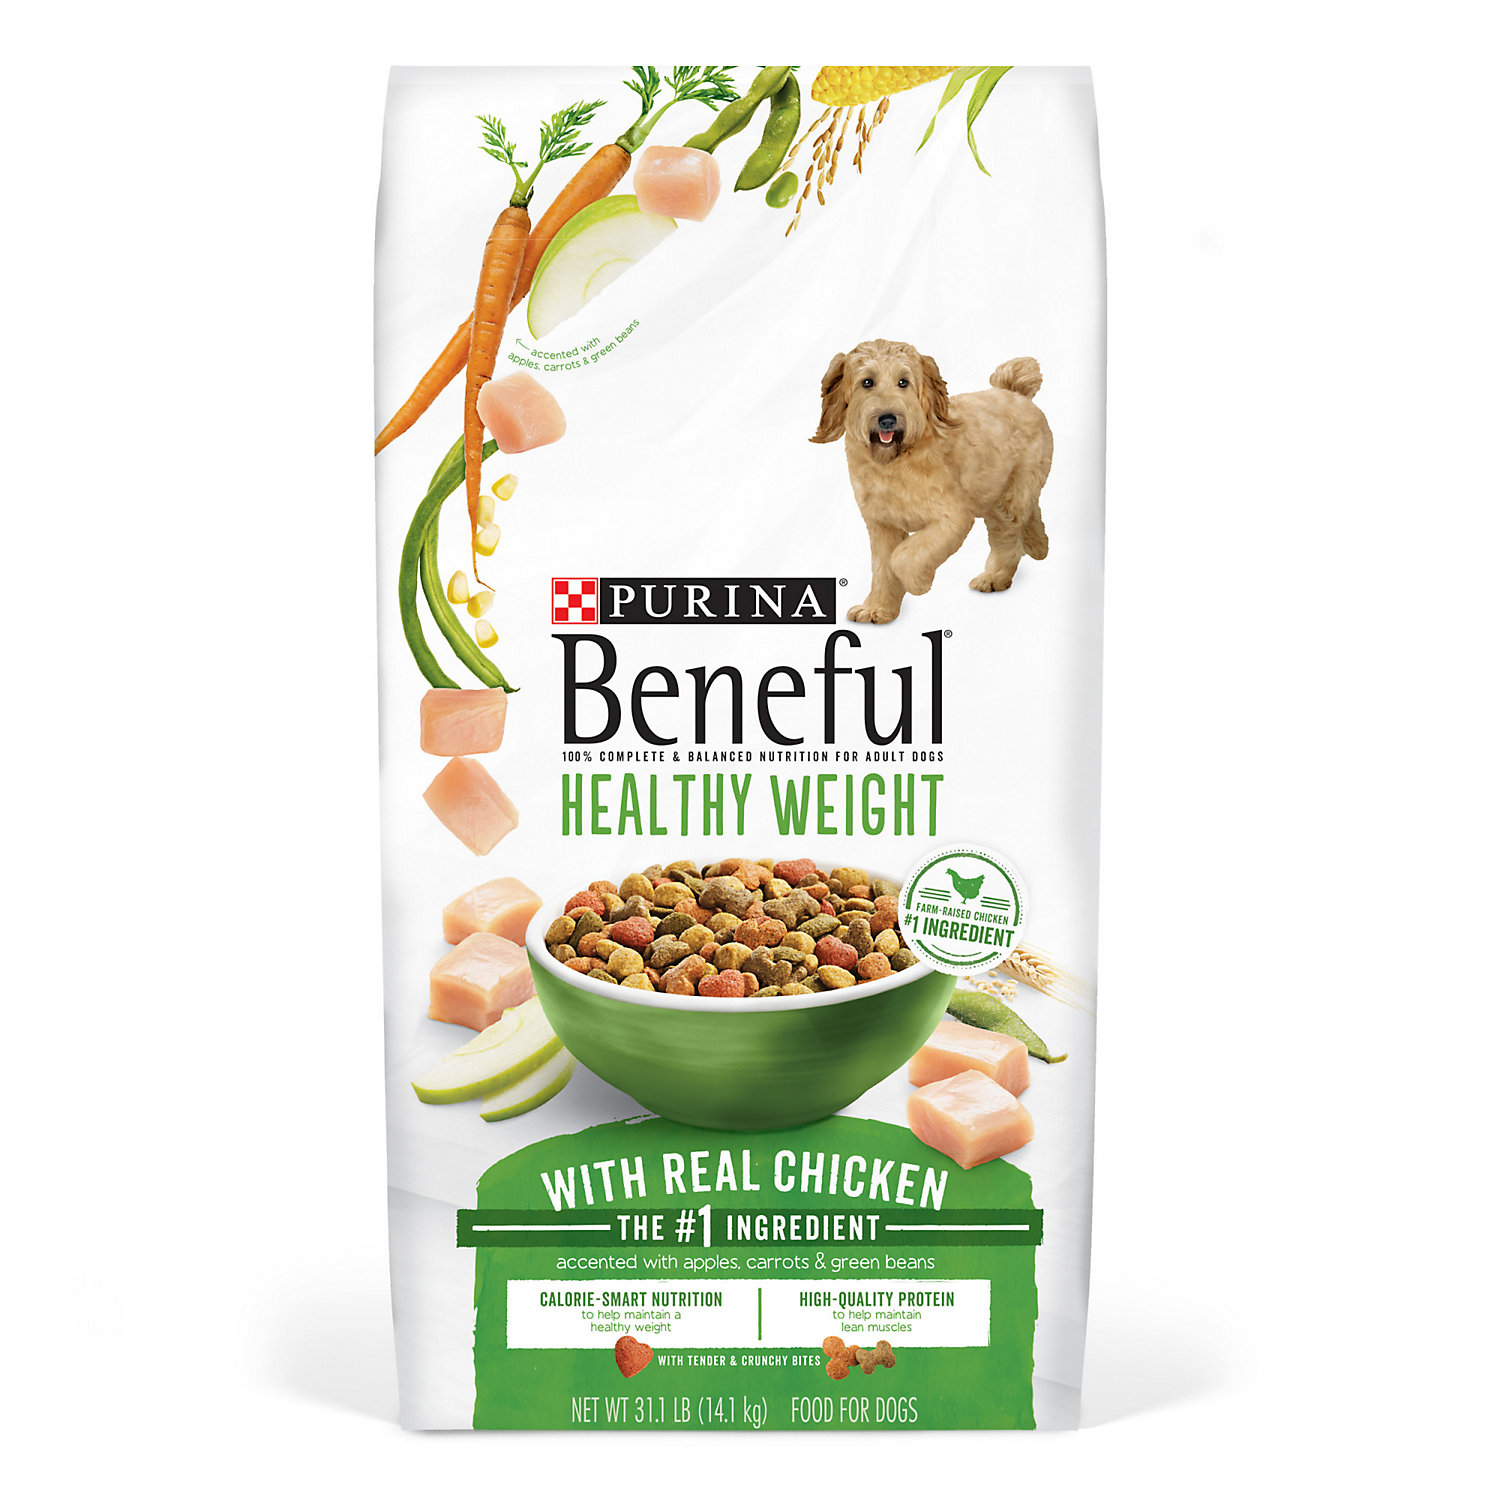 Purina Beneful Healthy Weight With Real Chicken Dry Dog Food 31.1 Lb. Bag